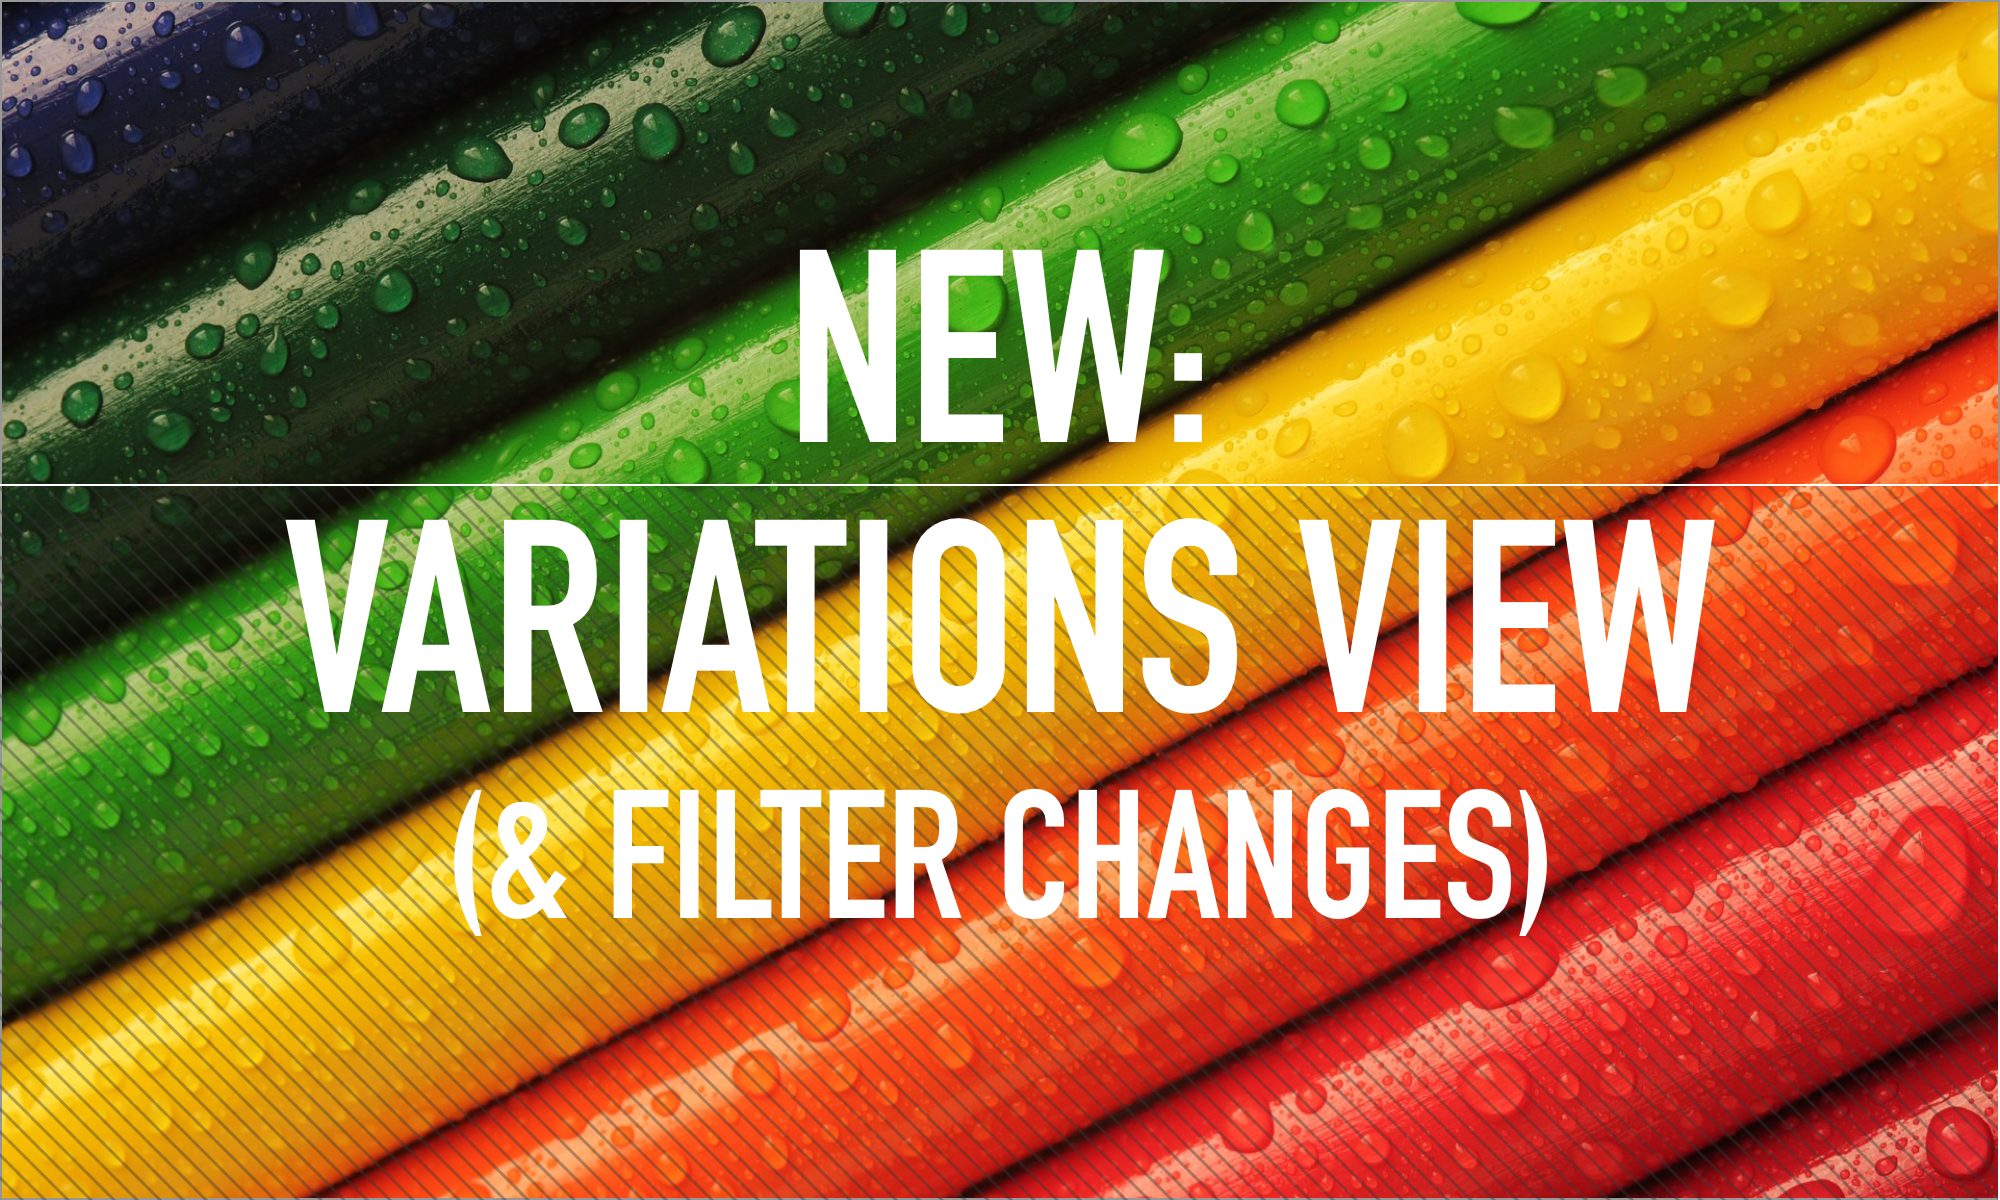 New: Variations View (and filter changes)